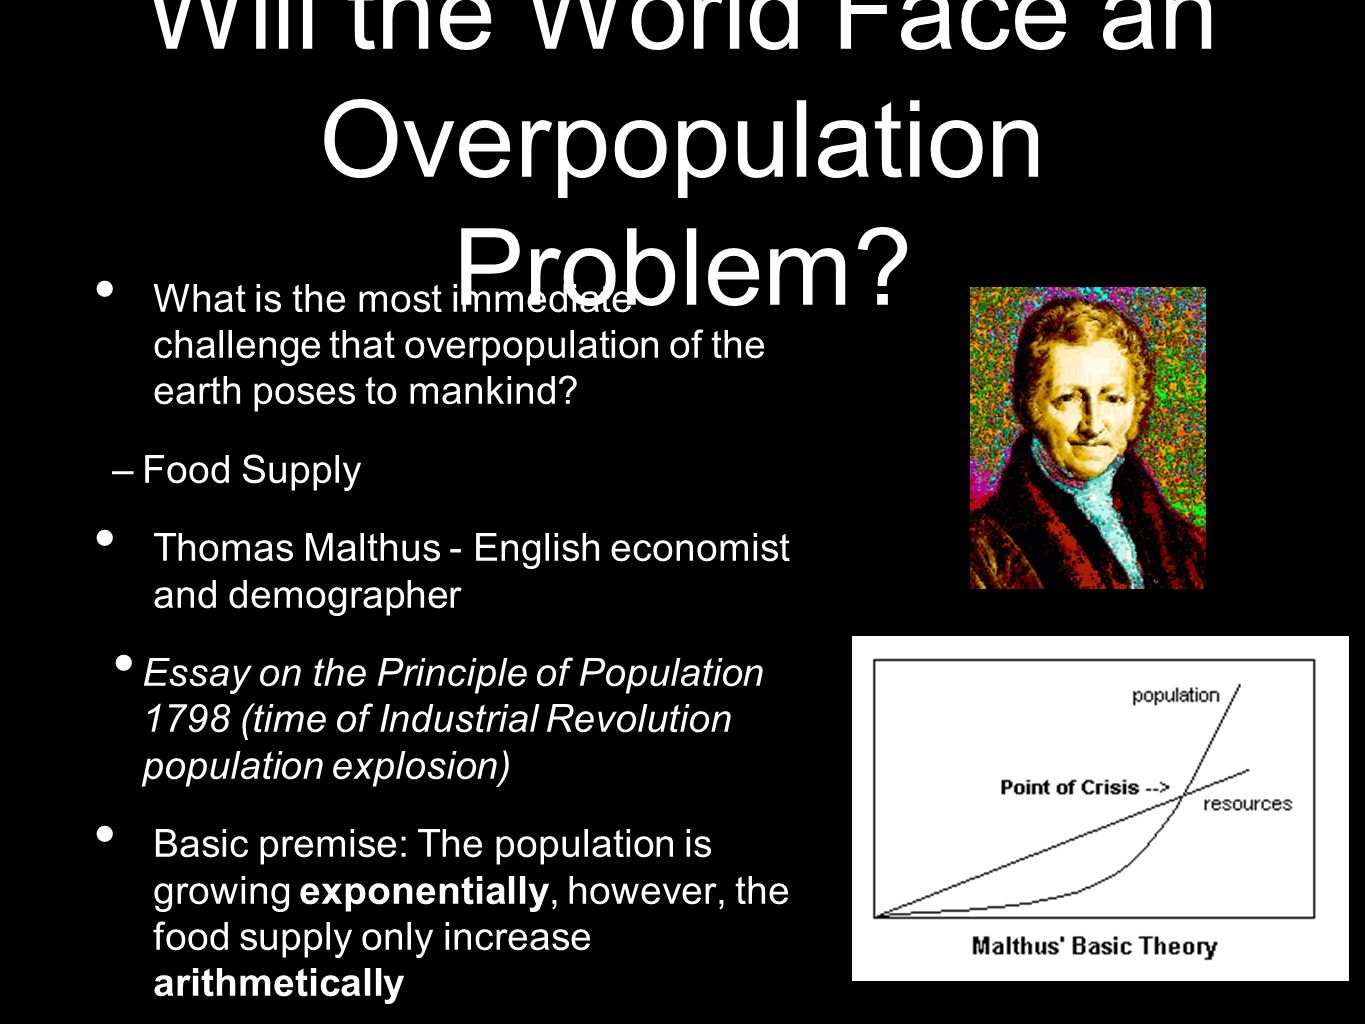 Will the World Face an Overpopulation Problem